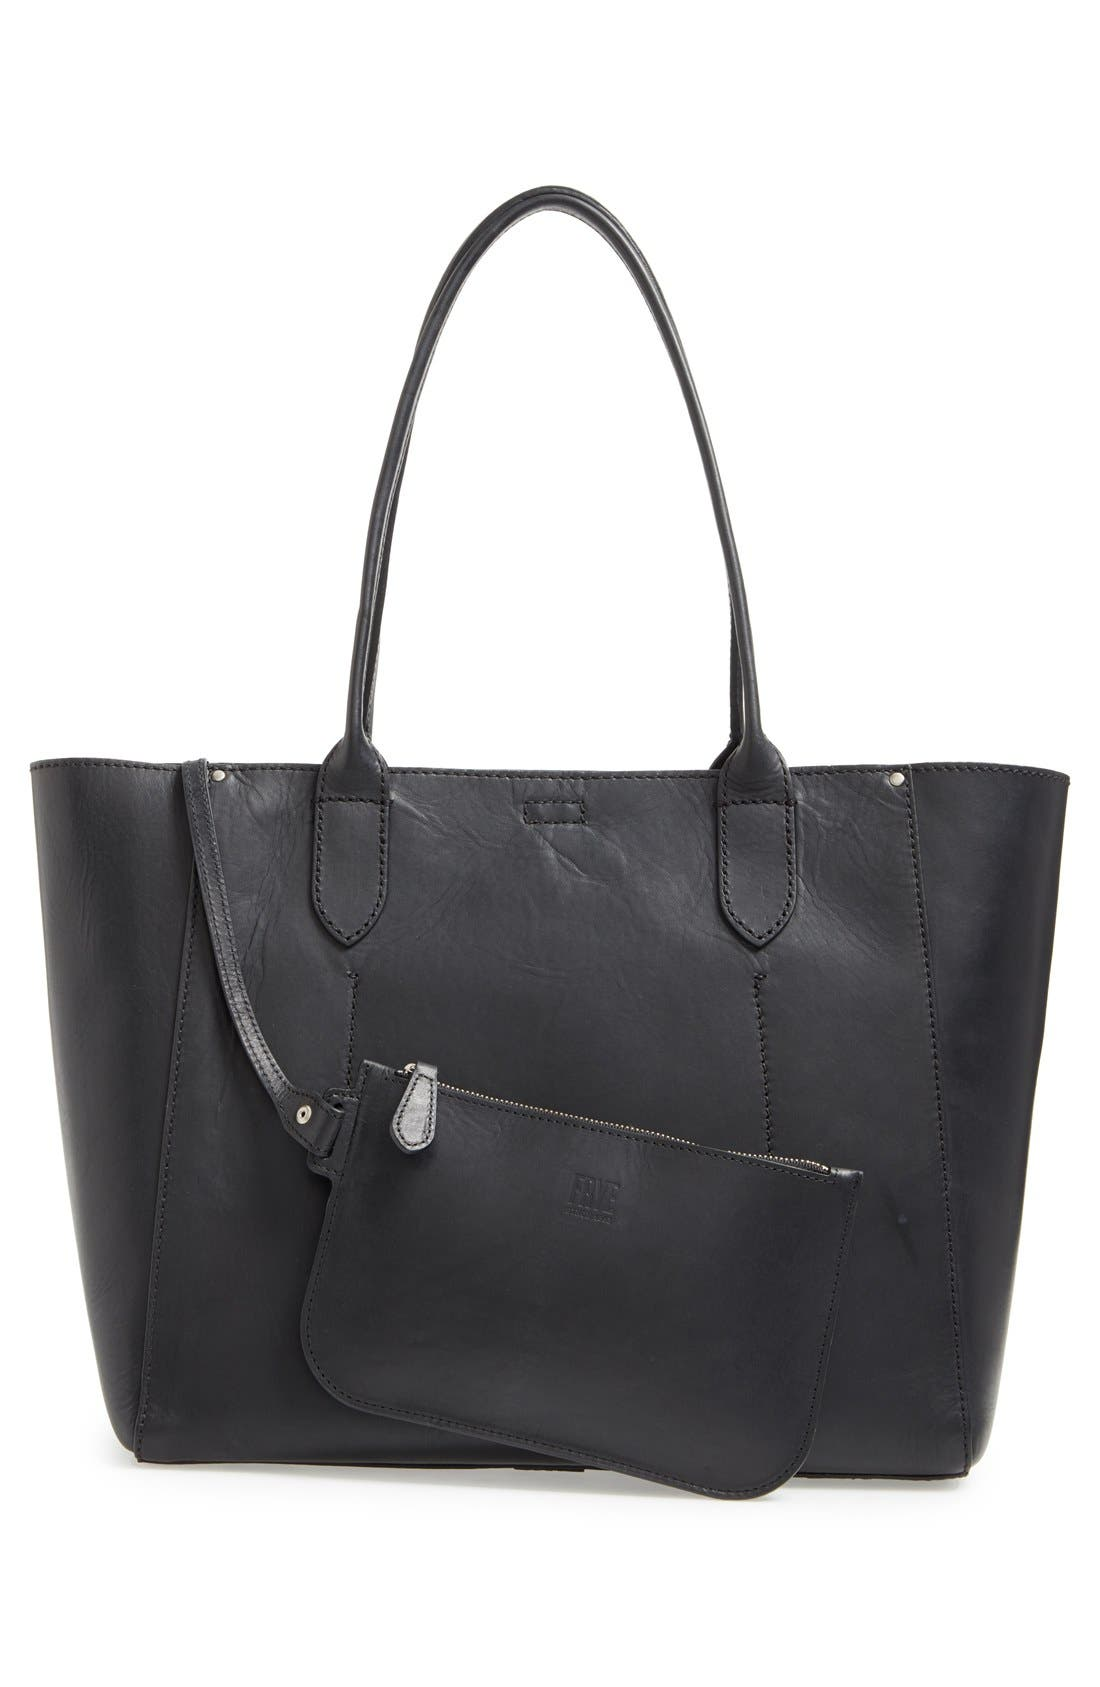 FRYE,                             'Casey' Leather Tote,                             Alternate thumbnail 3, color,                             001